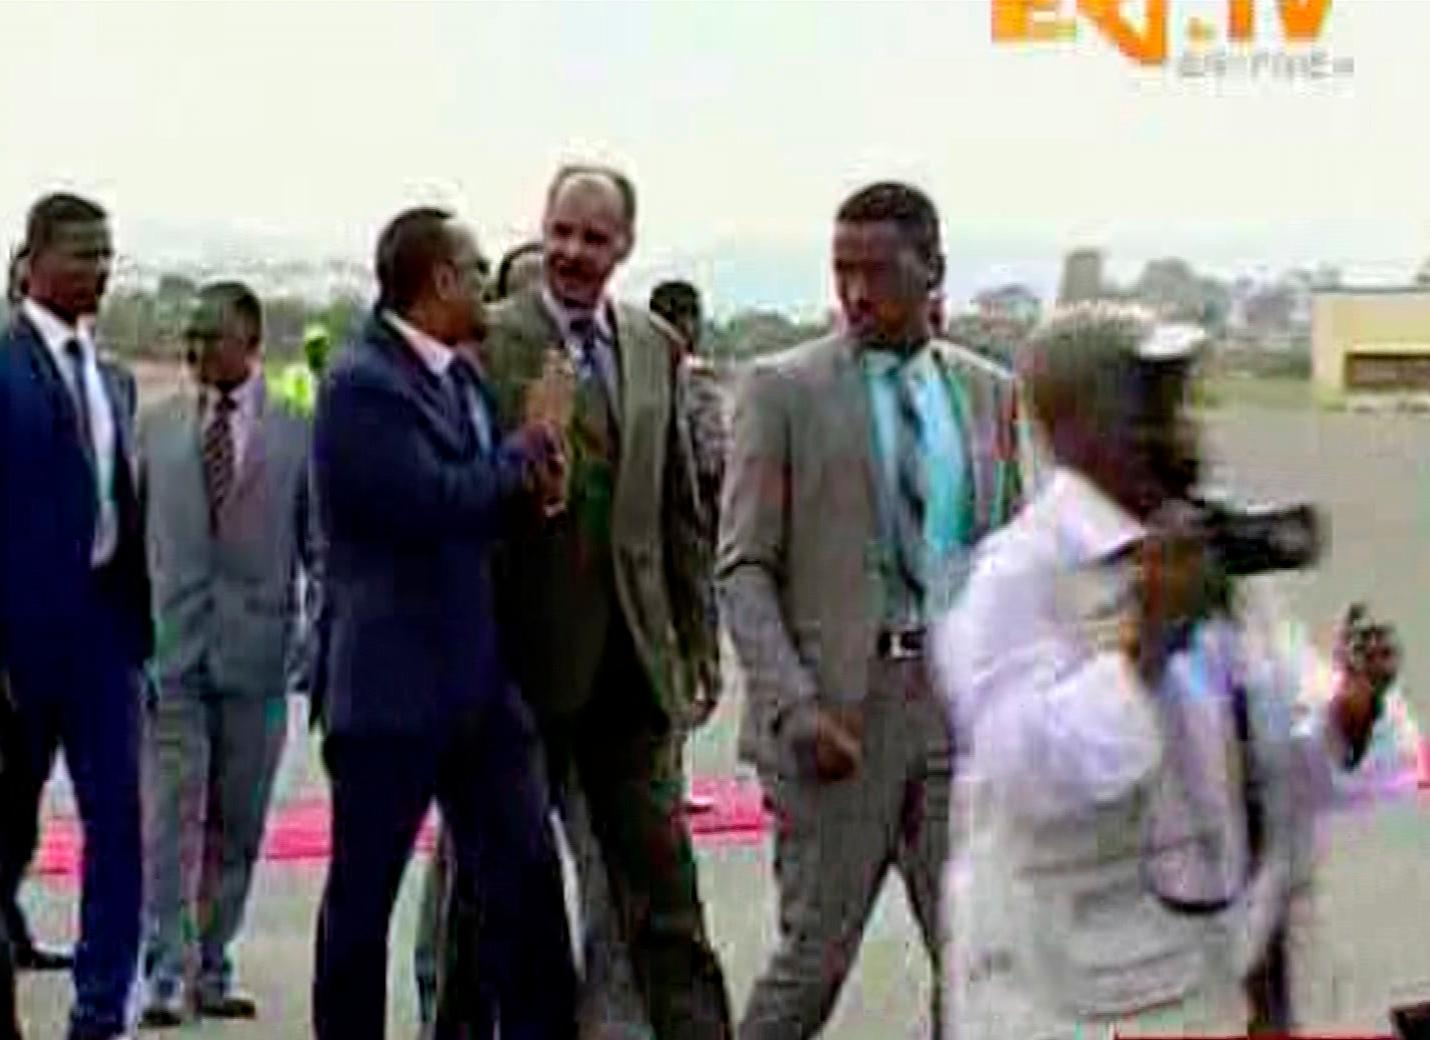 In this grab taken from video provided by ERITV, Ethiopia's Prime Minister Abiy Ahmed, centre left is welcomed by Erirea's President Isaias Afwerki as he disembarks the plane, in Asmara, Eritrea, Sunday, July 8, 2018. With laughter and hugs, the leaders of longtime rivals Ethiopia and Eritrea met for the first time in nearly two decades Sunday amid a rapid and dramatic diplomatic thaw aimed at ending one of Africa's longest-running conflicts. (ERITV via AP)